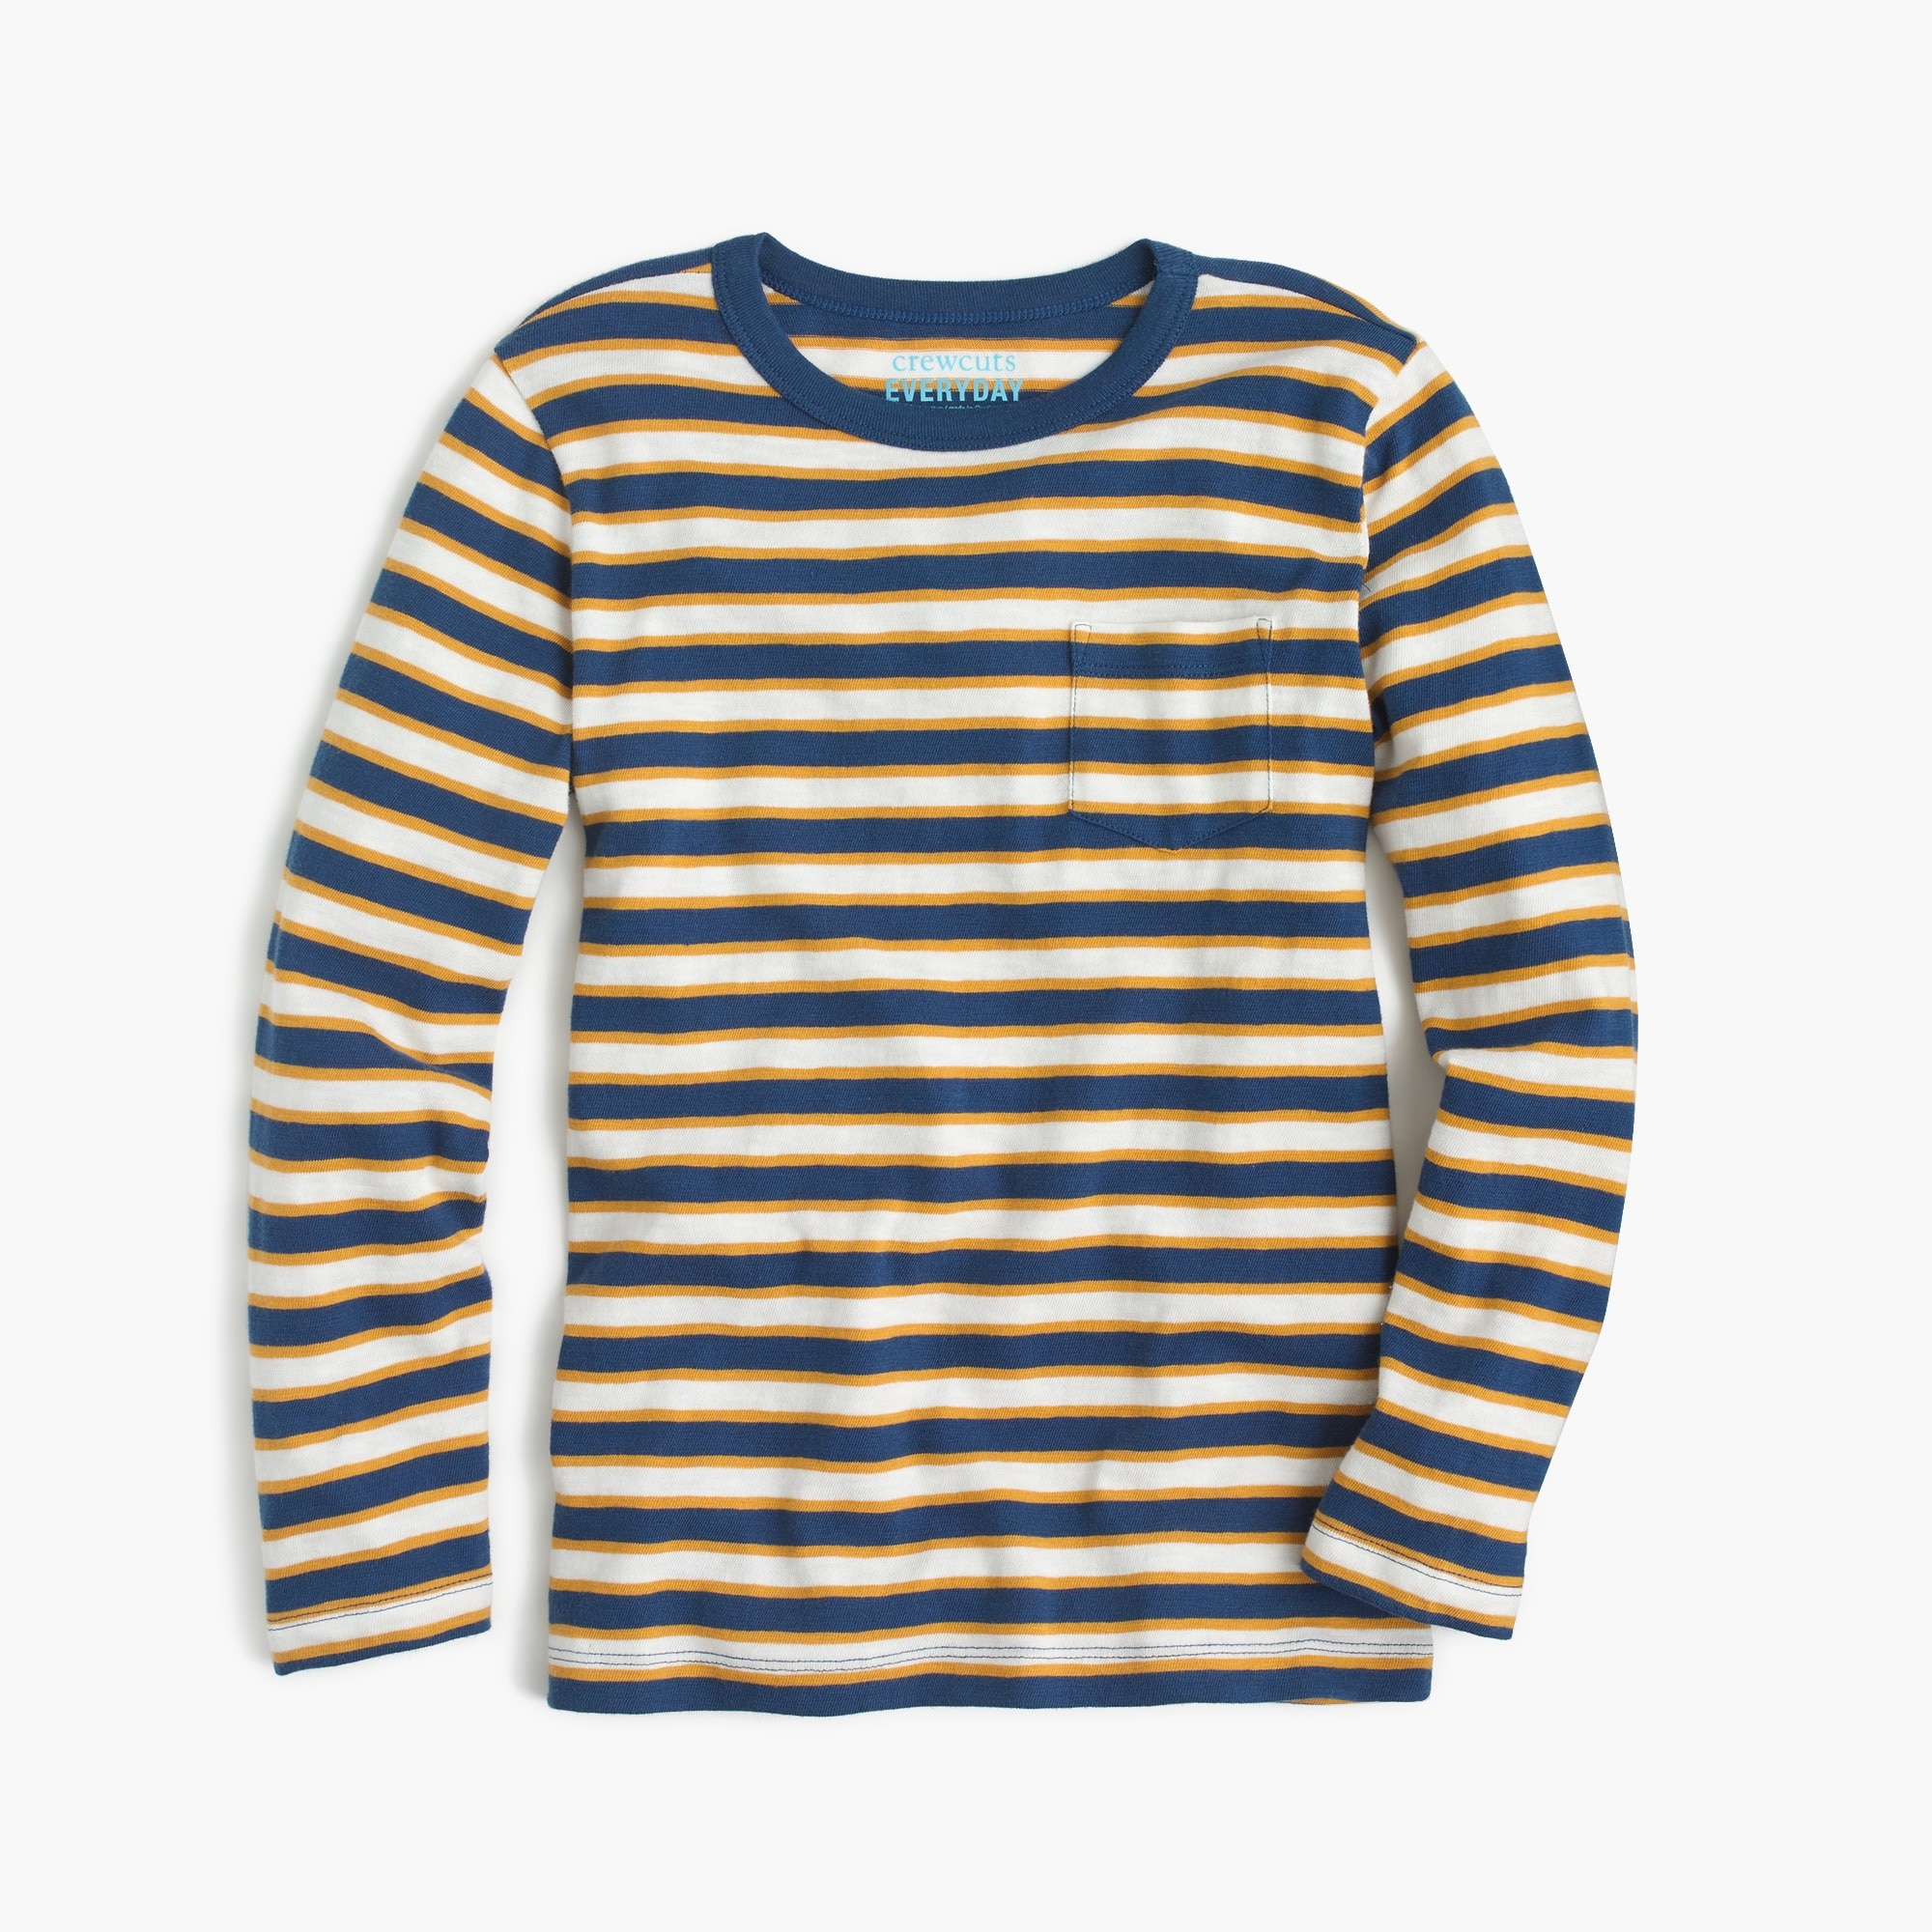 Boys' striped long-sleeve T-shirt boy new arrivals c